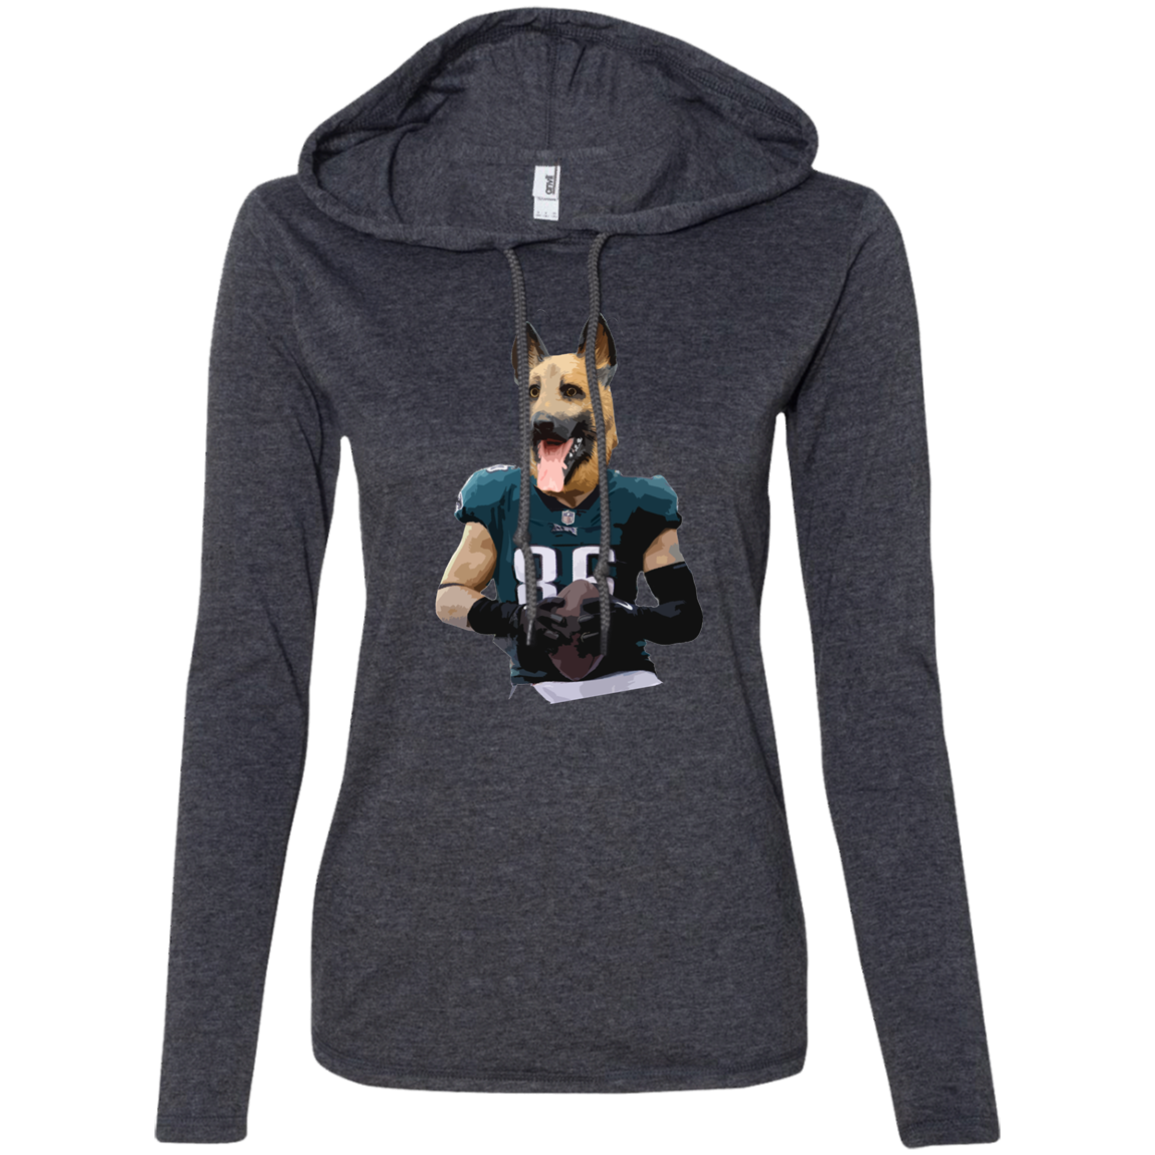 cheaper 3e97a 07661 PHILLY UNDERDOG HOODIE -Philadelphia Eagles - DOG MASK